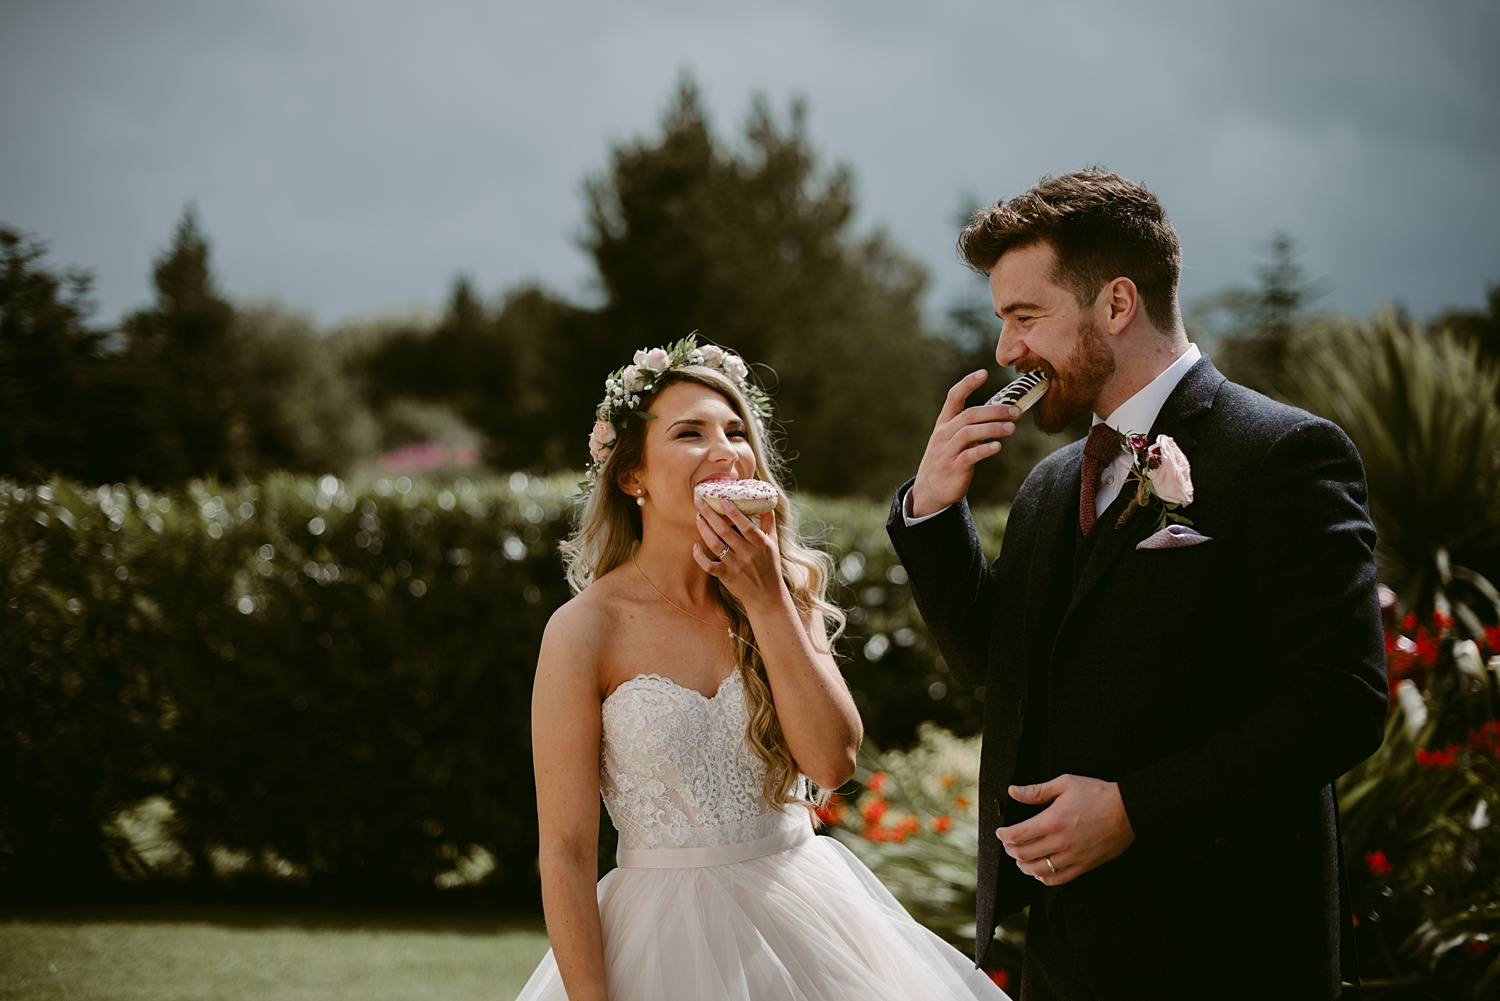 Claire-Fleck-Scottish-wedding-photography-2017__0093.jpg